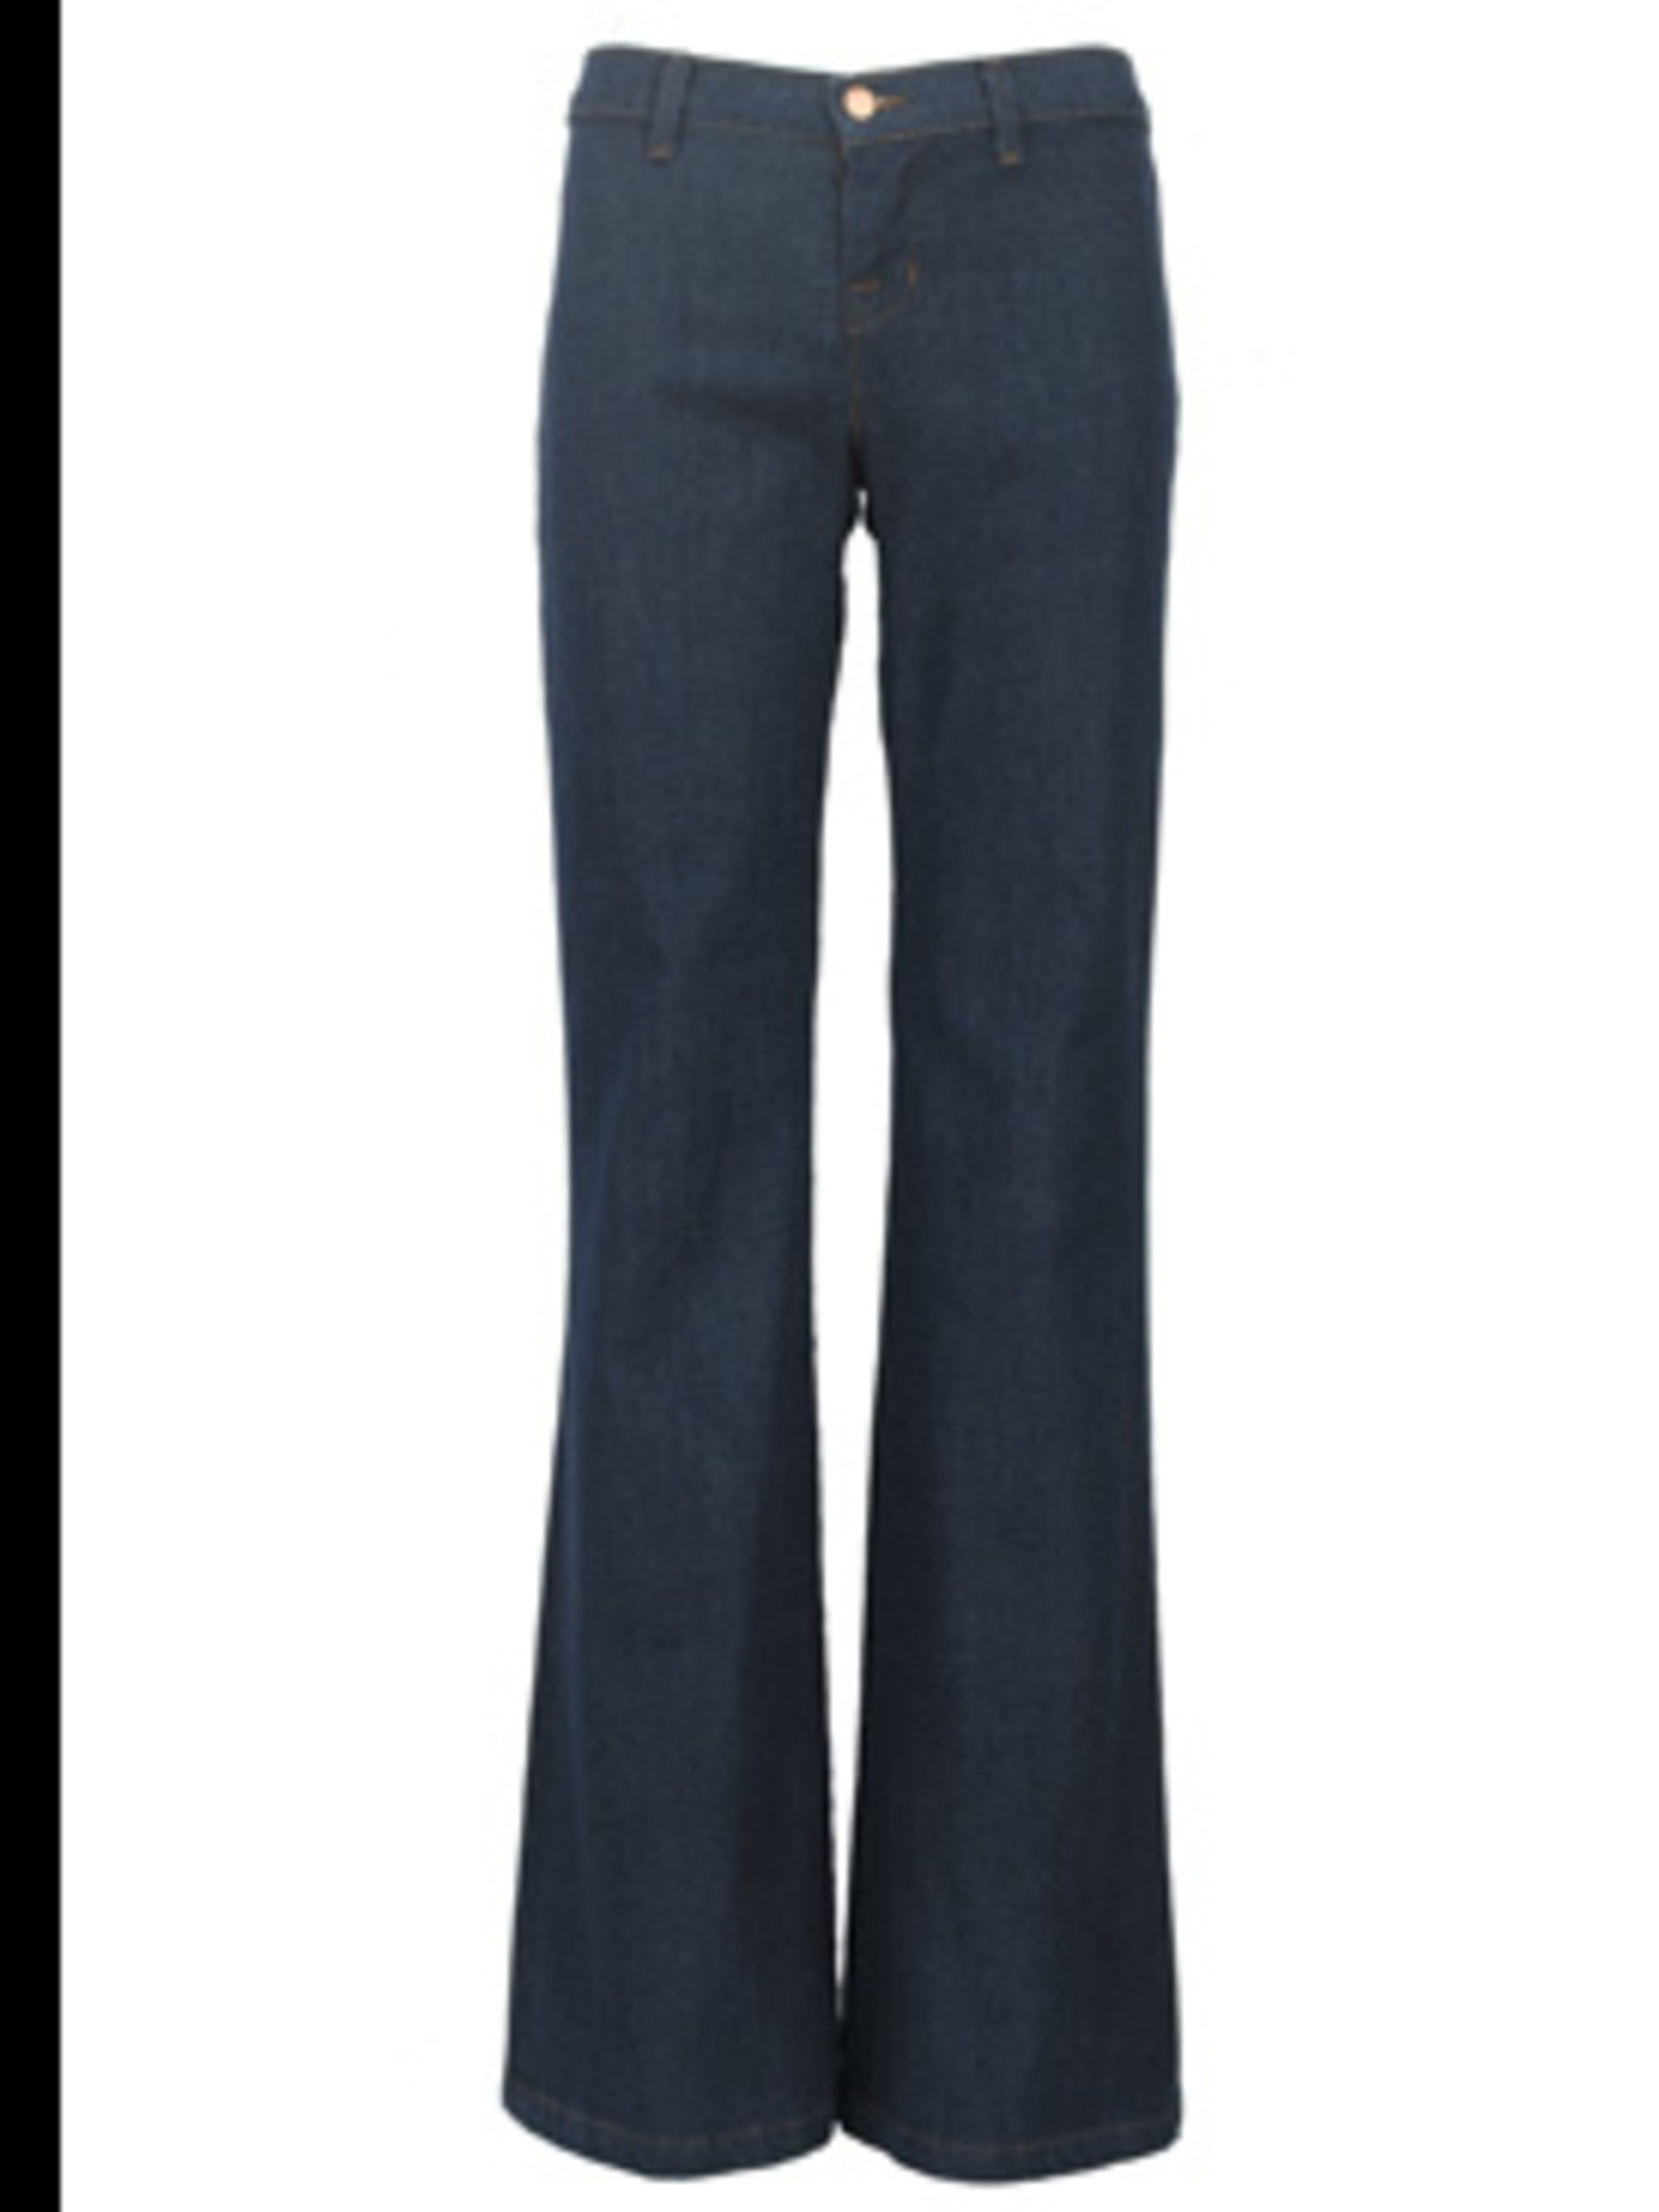 <p>'Marrakesh' jeans £170 by J Brand, available from Selfridges 0800 123 400</p>